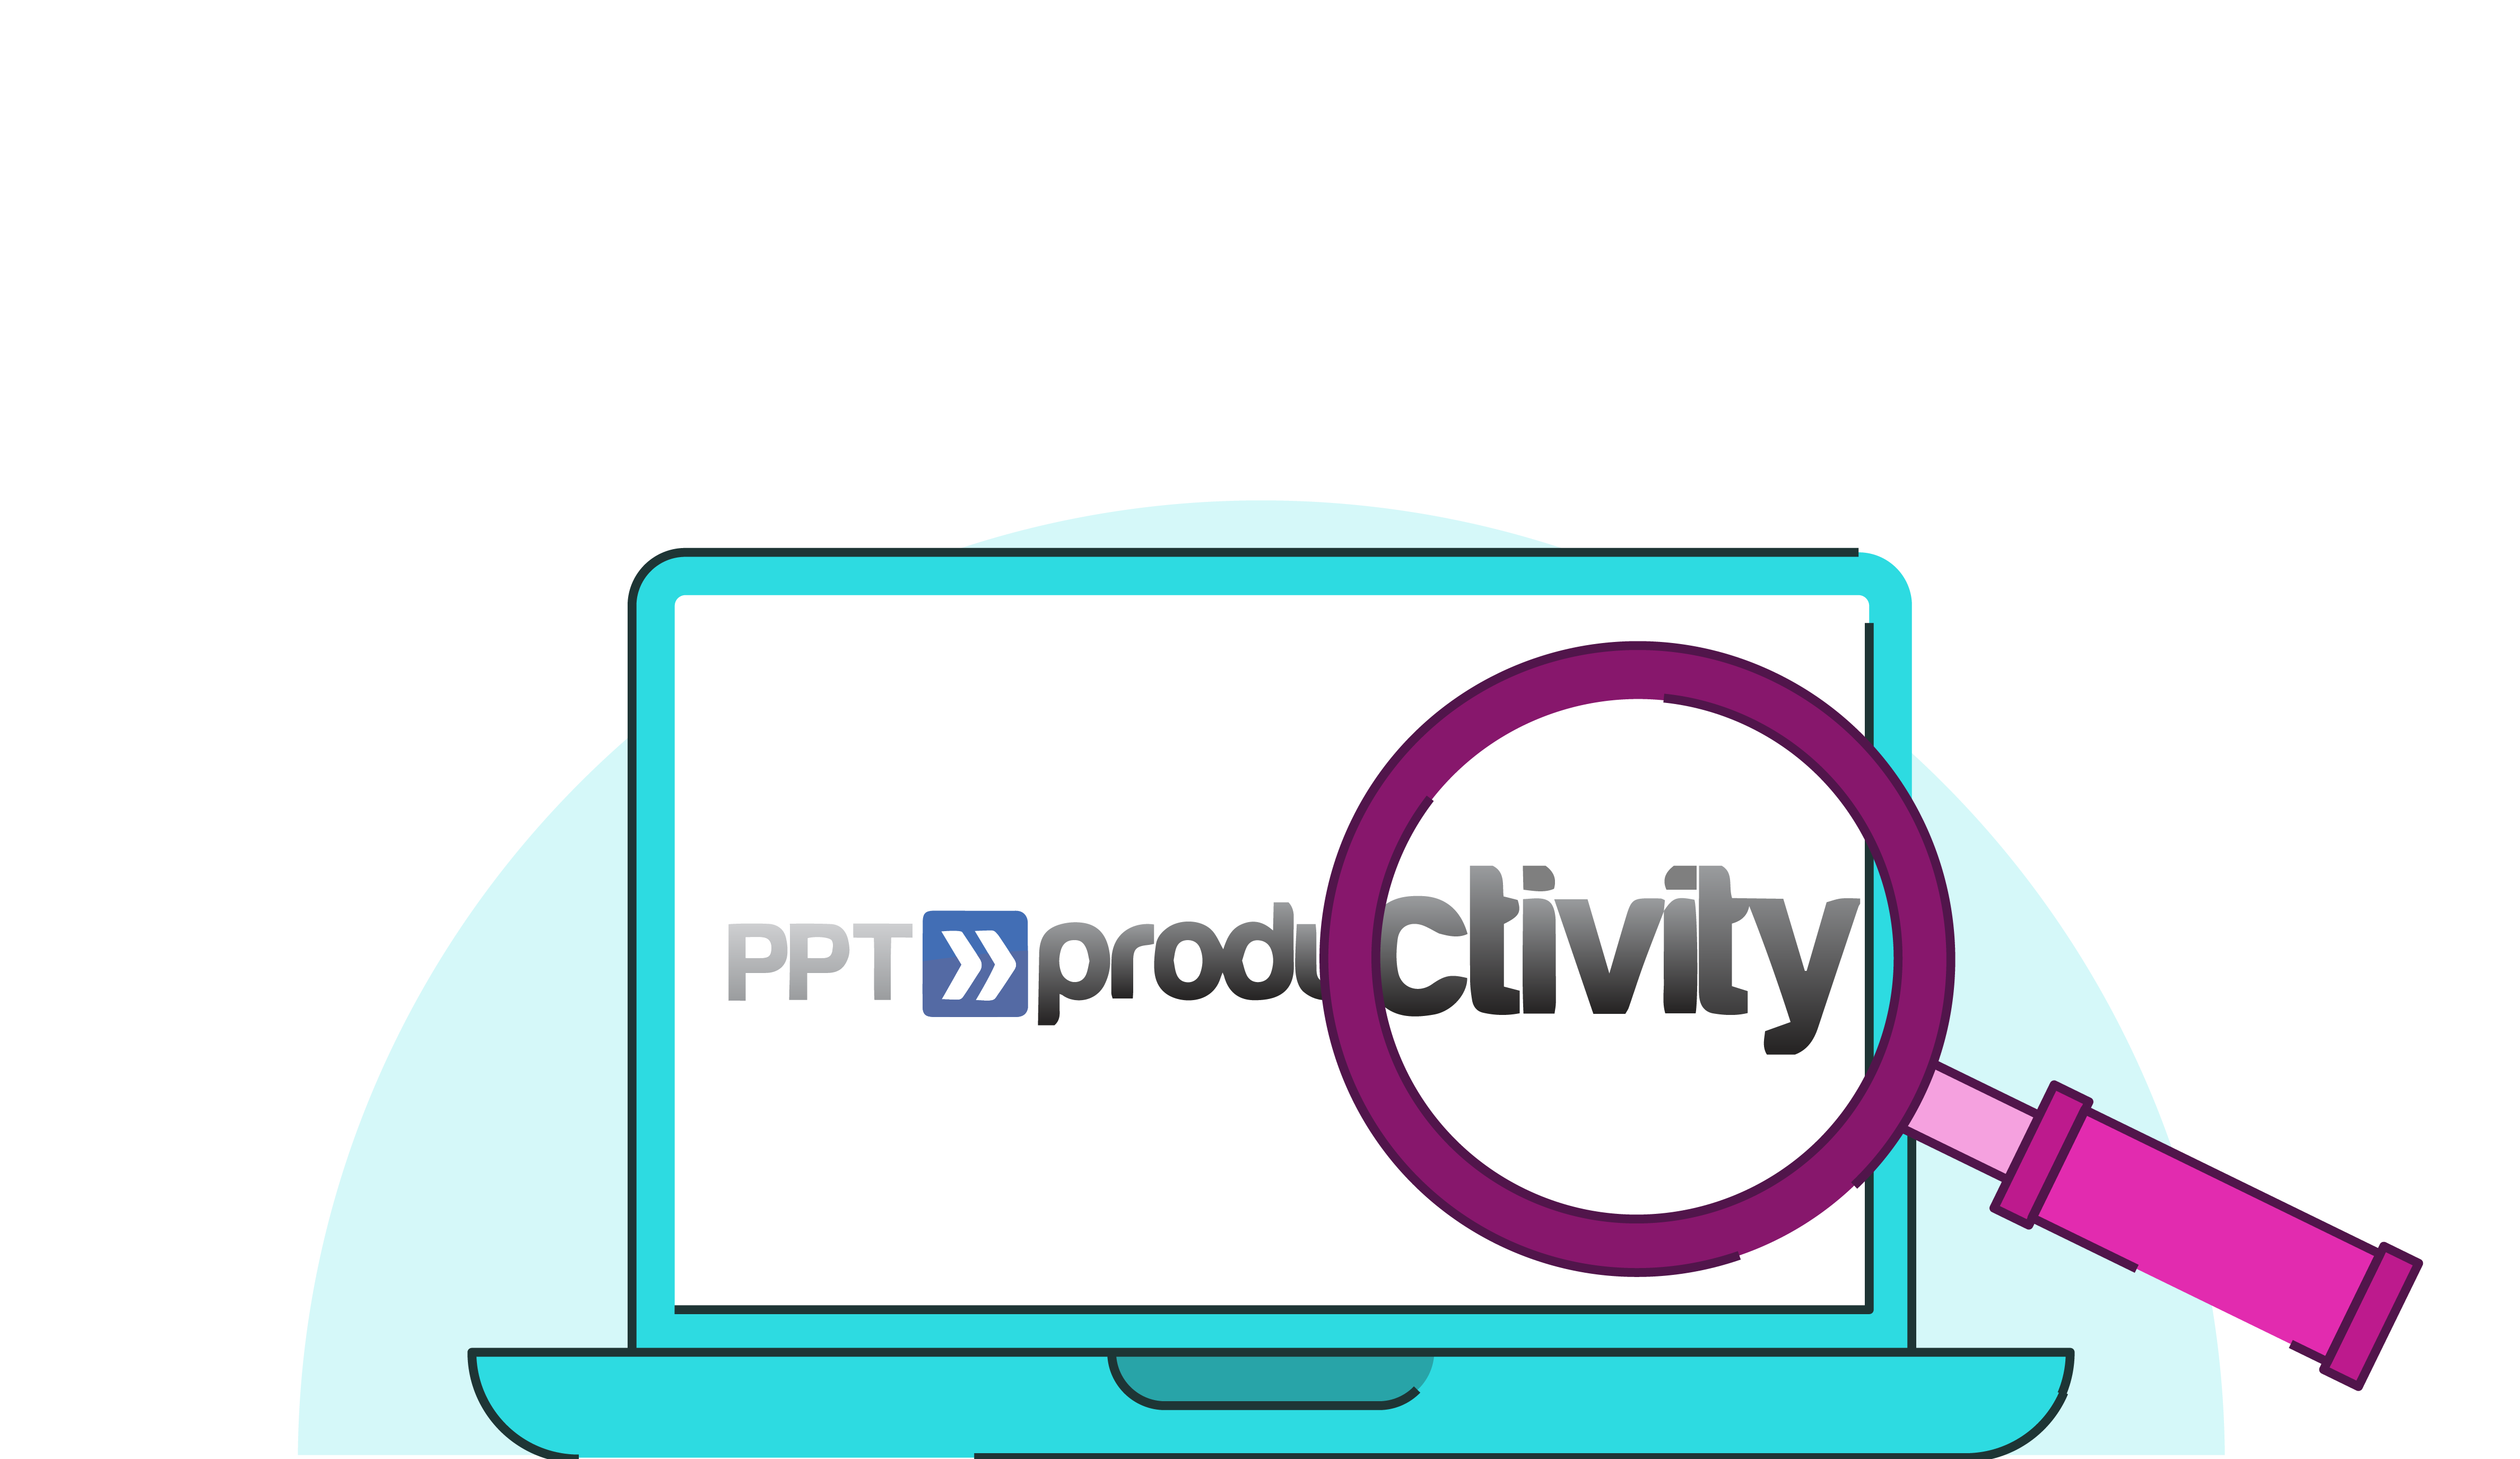 Technology review: PPT Productivity add-in for Microsoft